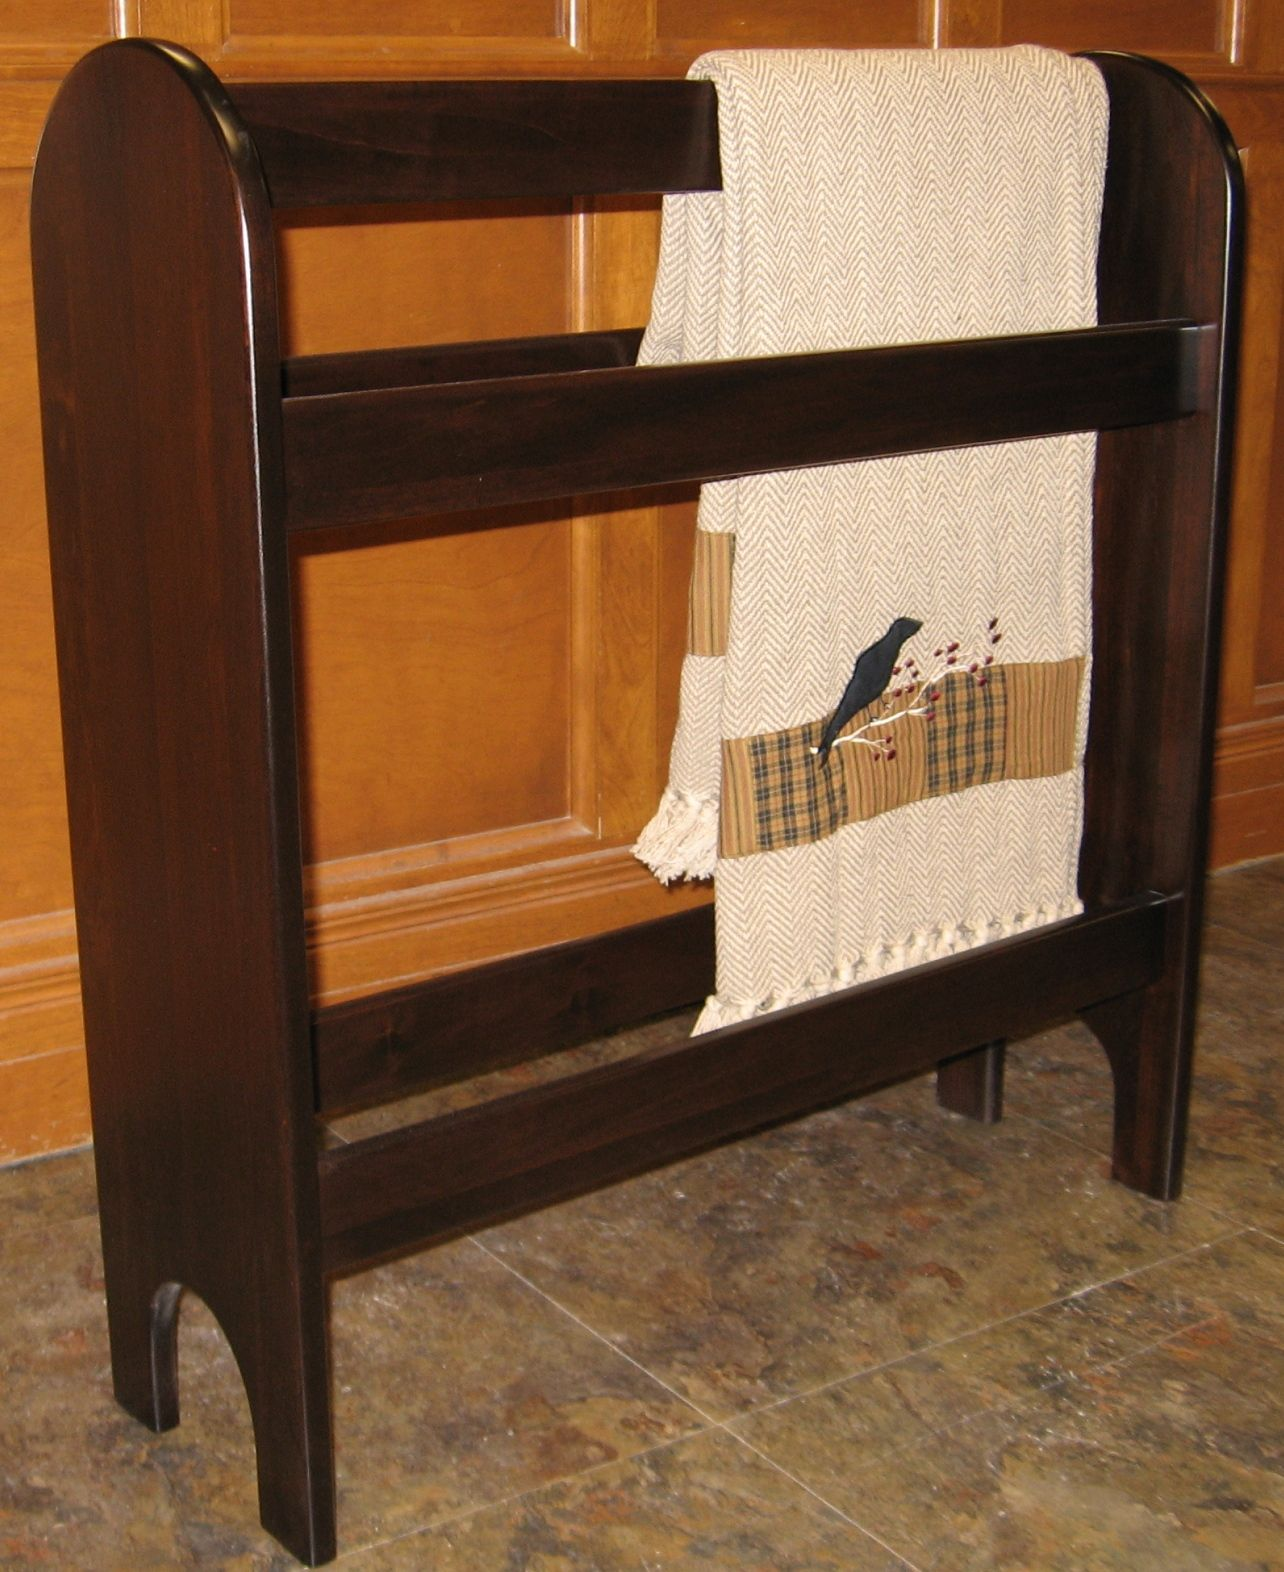 rack mahogany towel holders nextag proman level at master racks walmart products compare finish prices shopping quilt